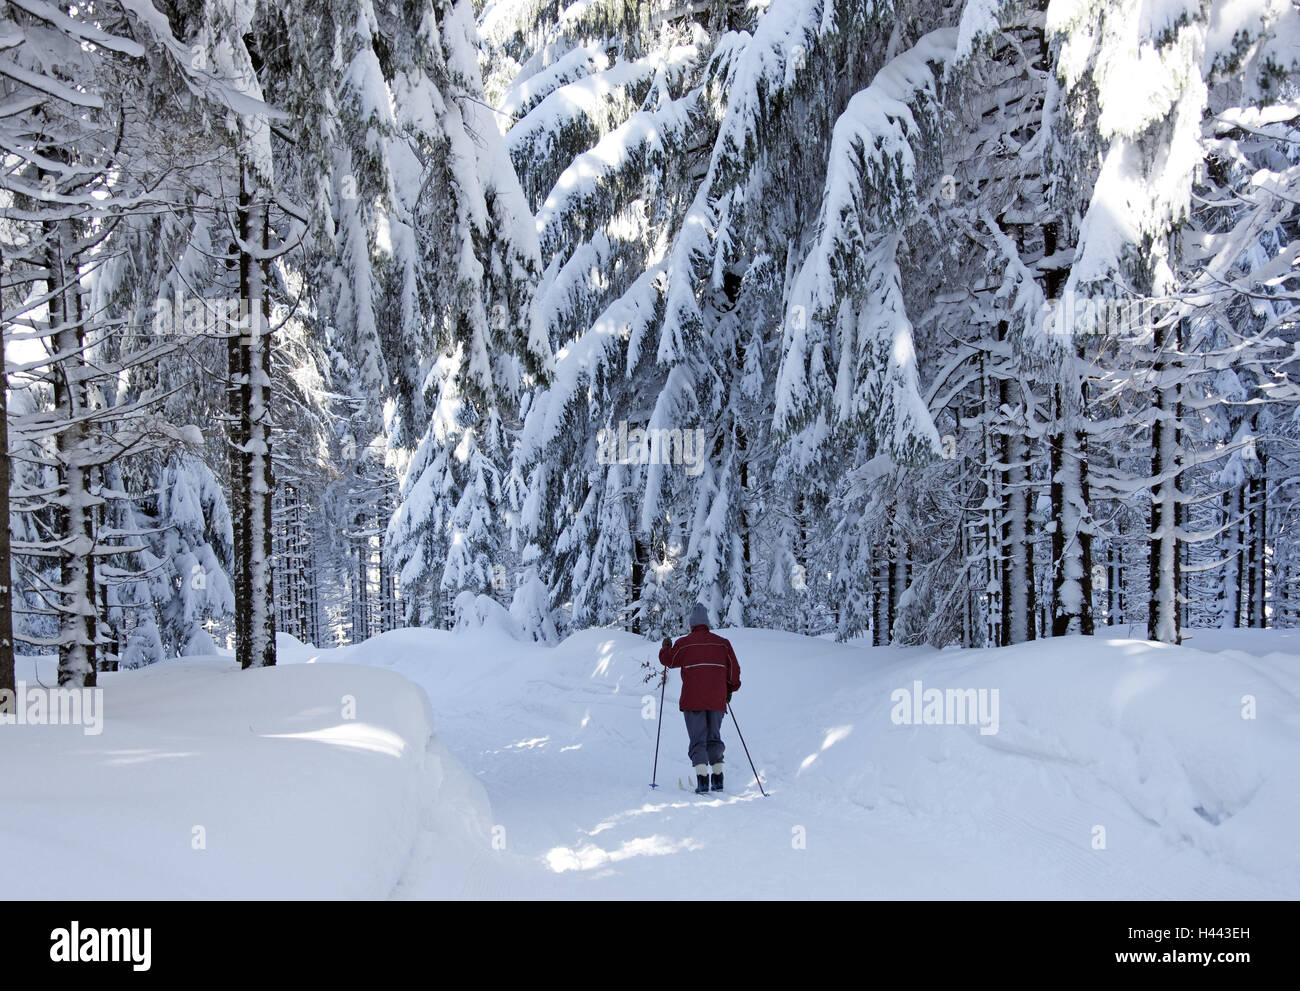 Racing dough, wood, spruces, snow, ski cross-country skier, - Stock Image